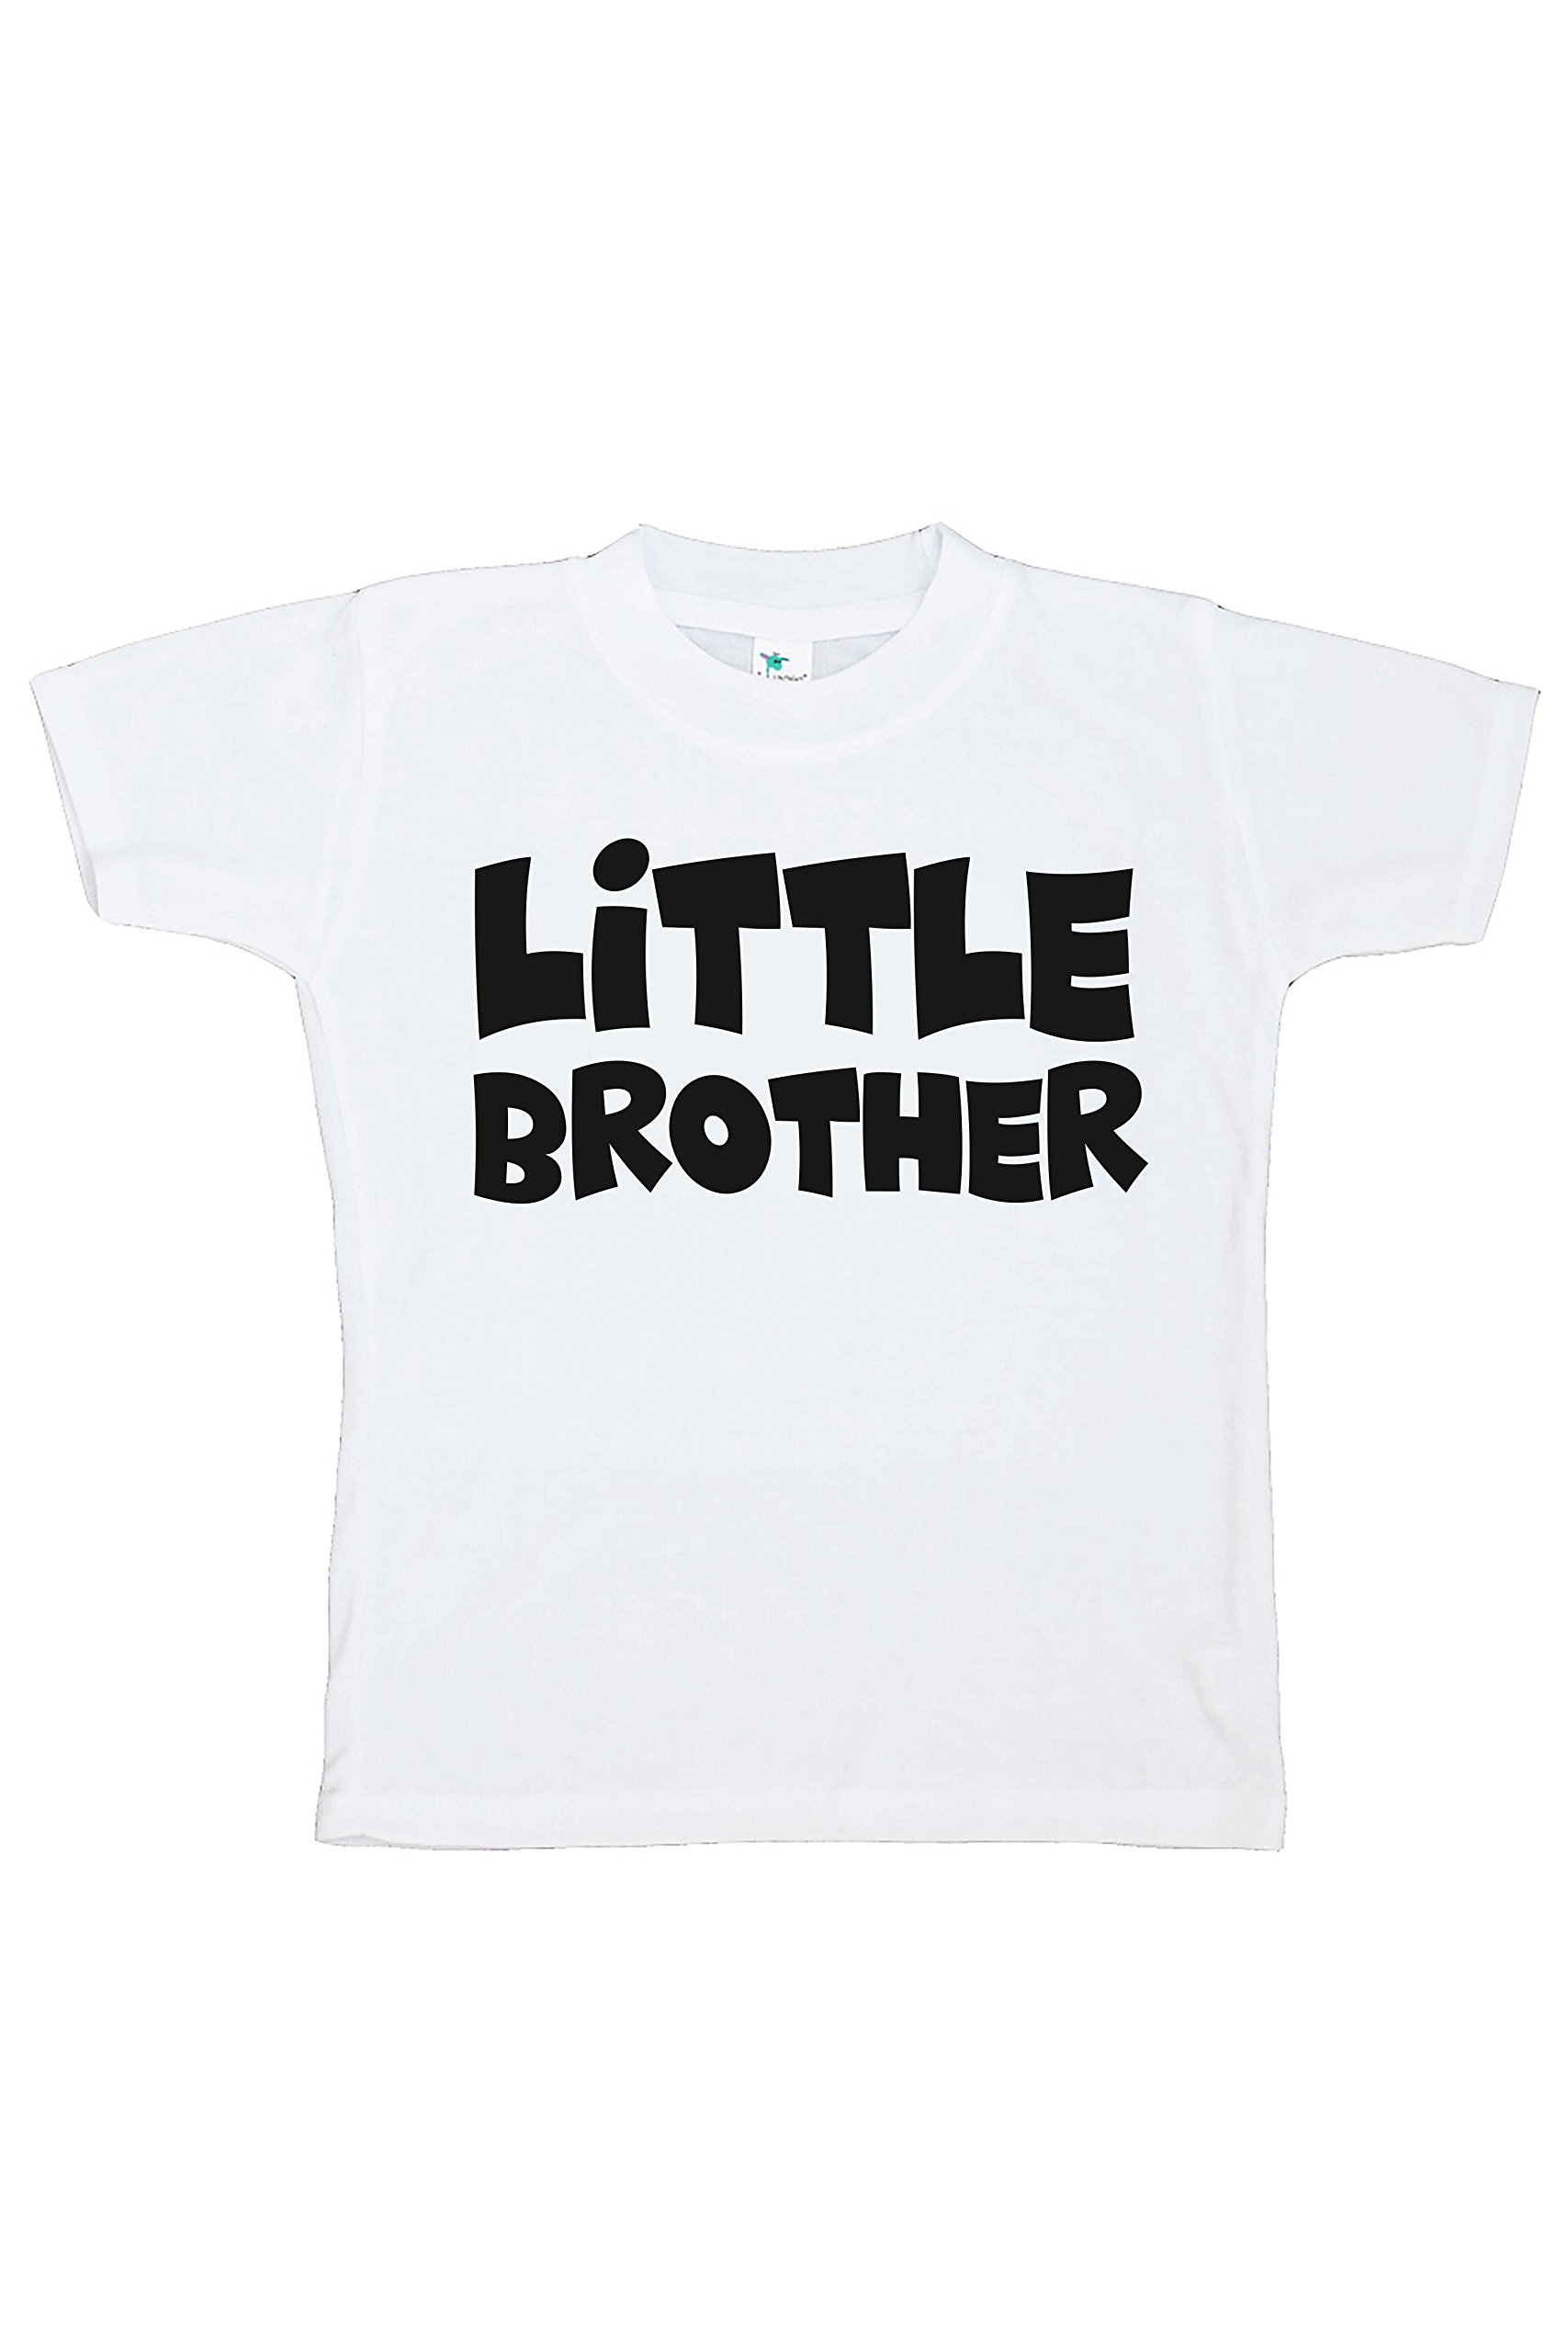 7 ate 9 Apparel Boy's Little Brother T-Shirt